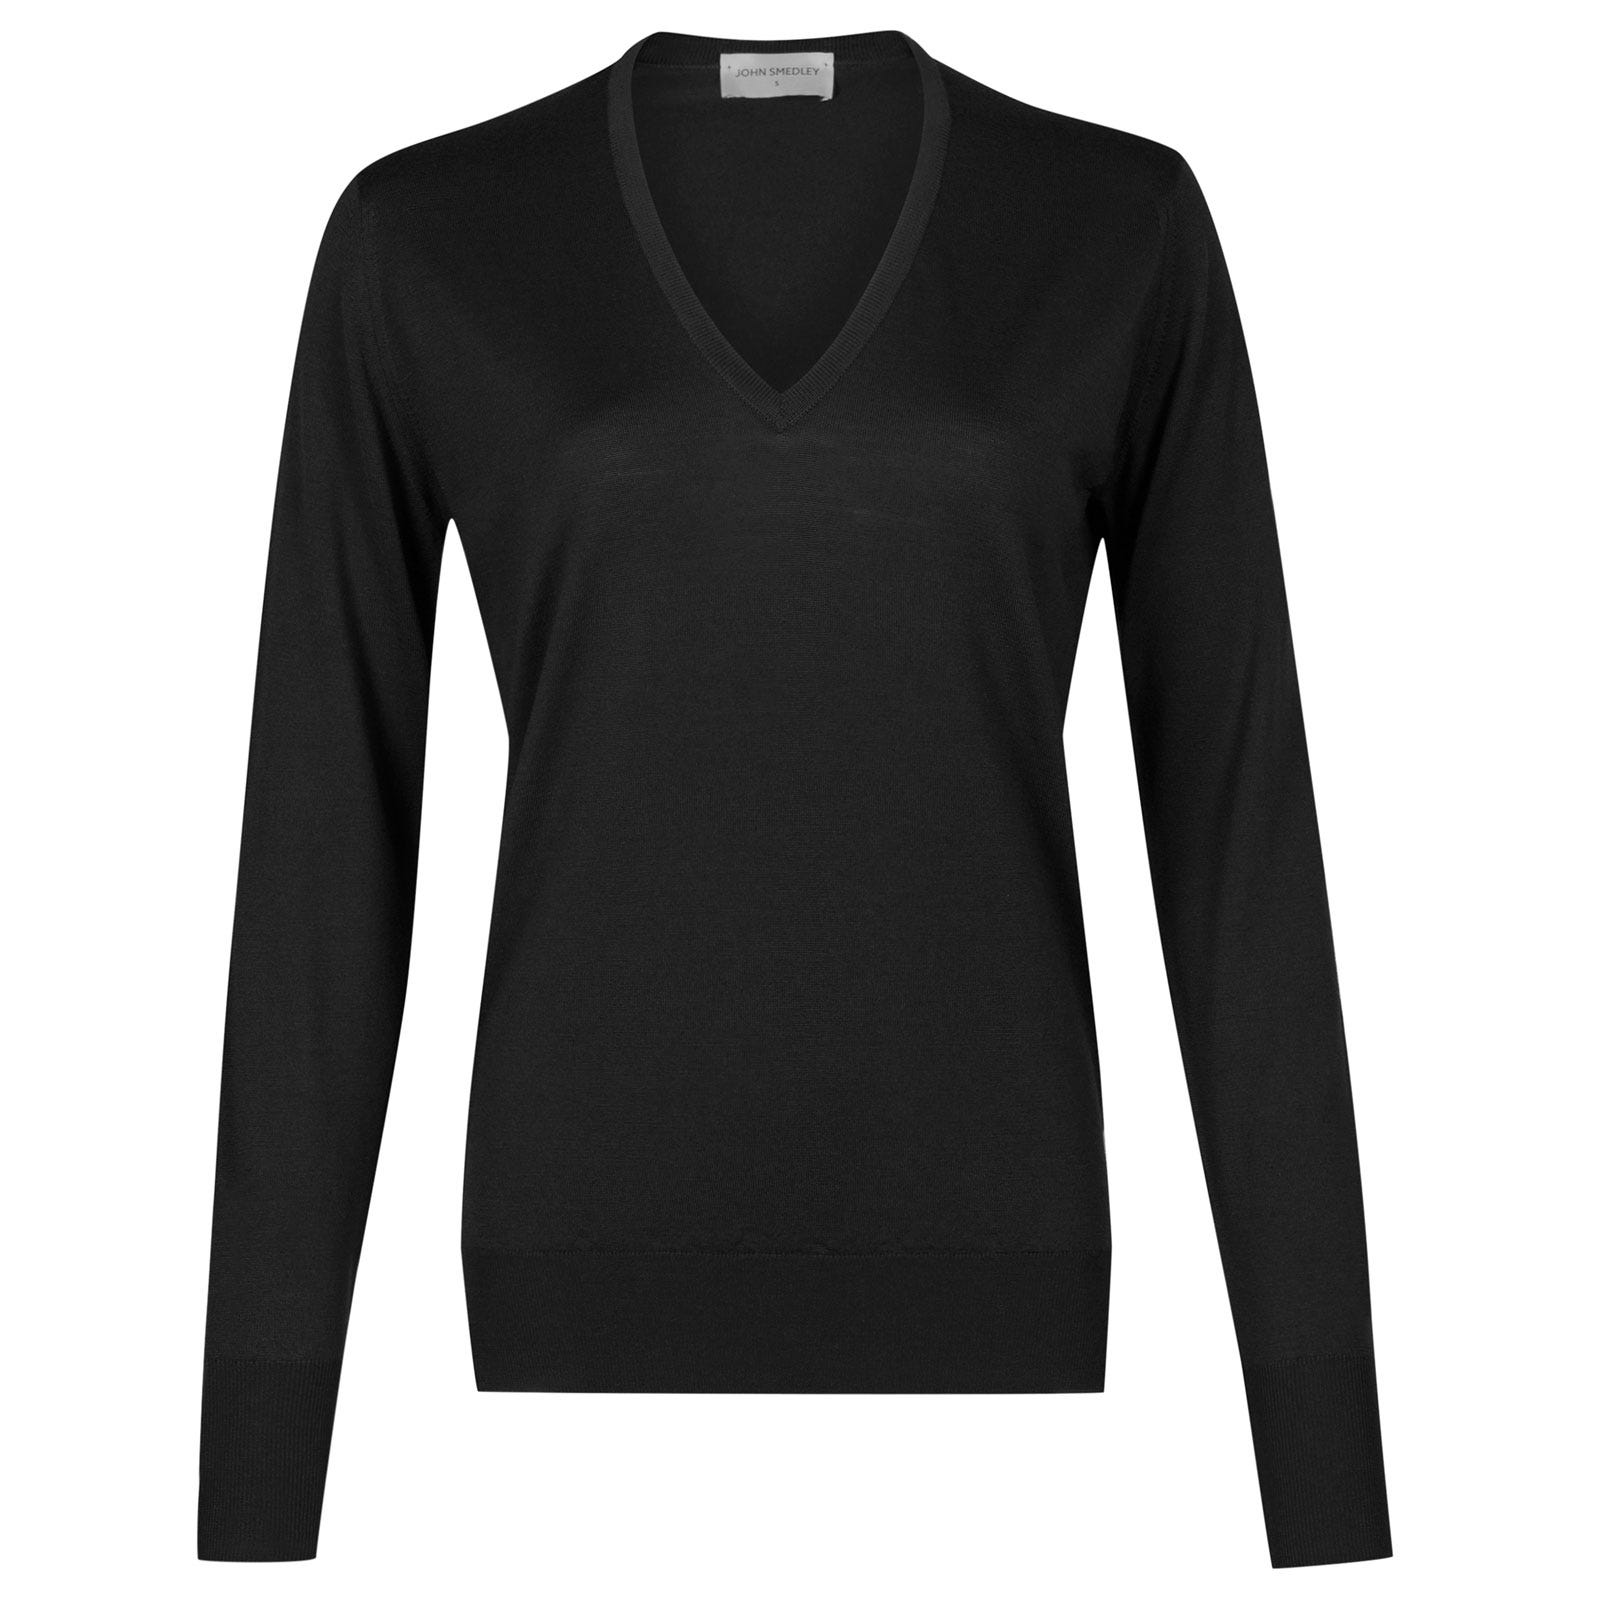 John Smedley Pepin Merino Wool Sweater in Black-M